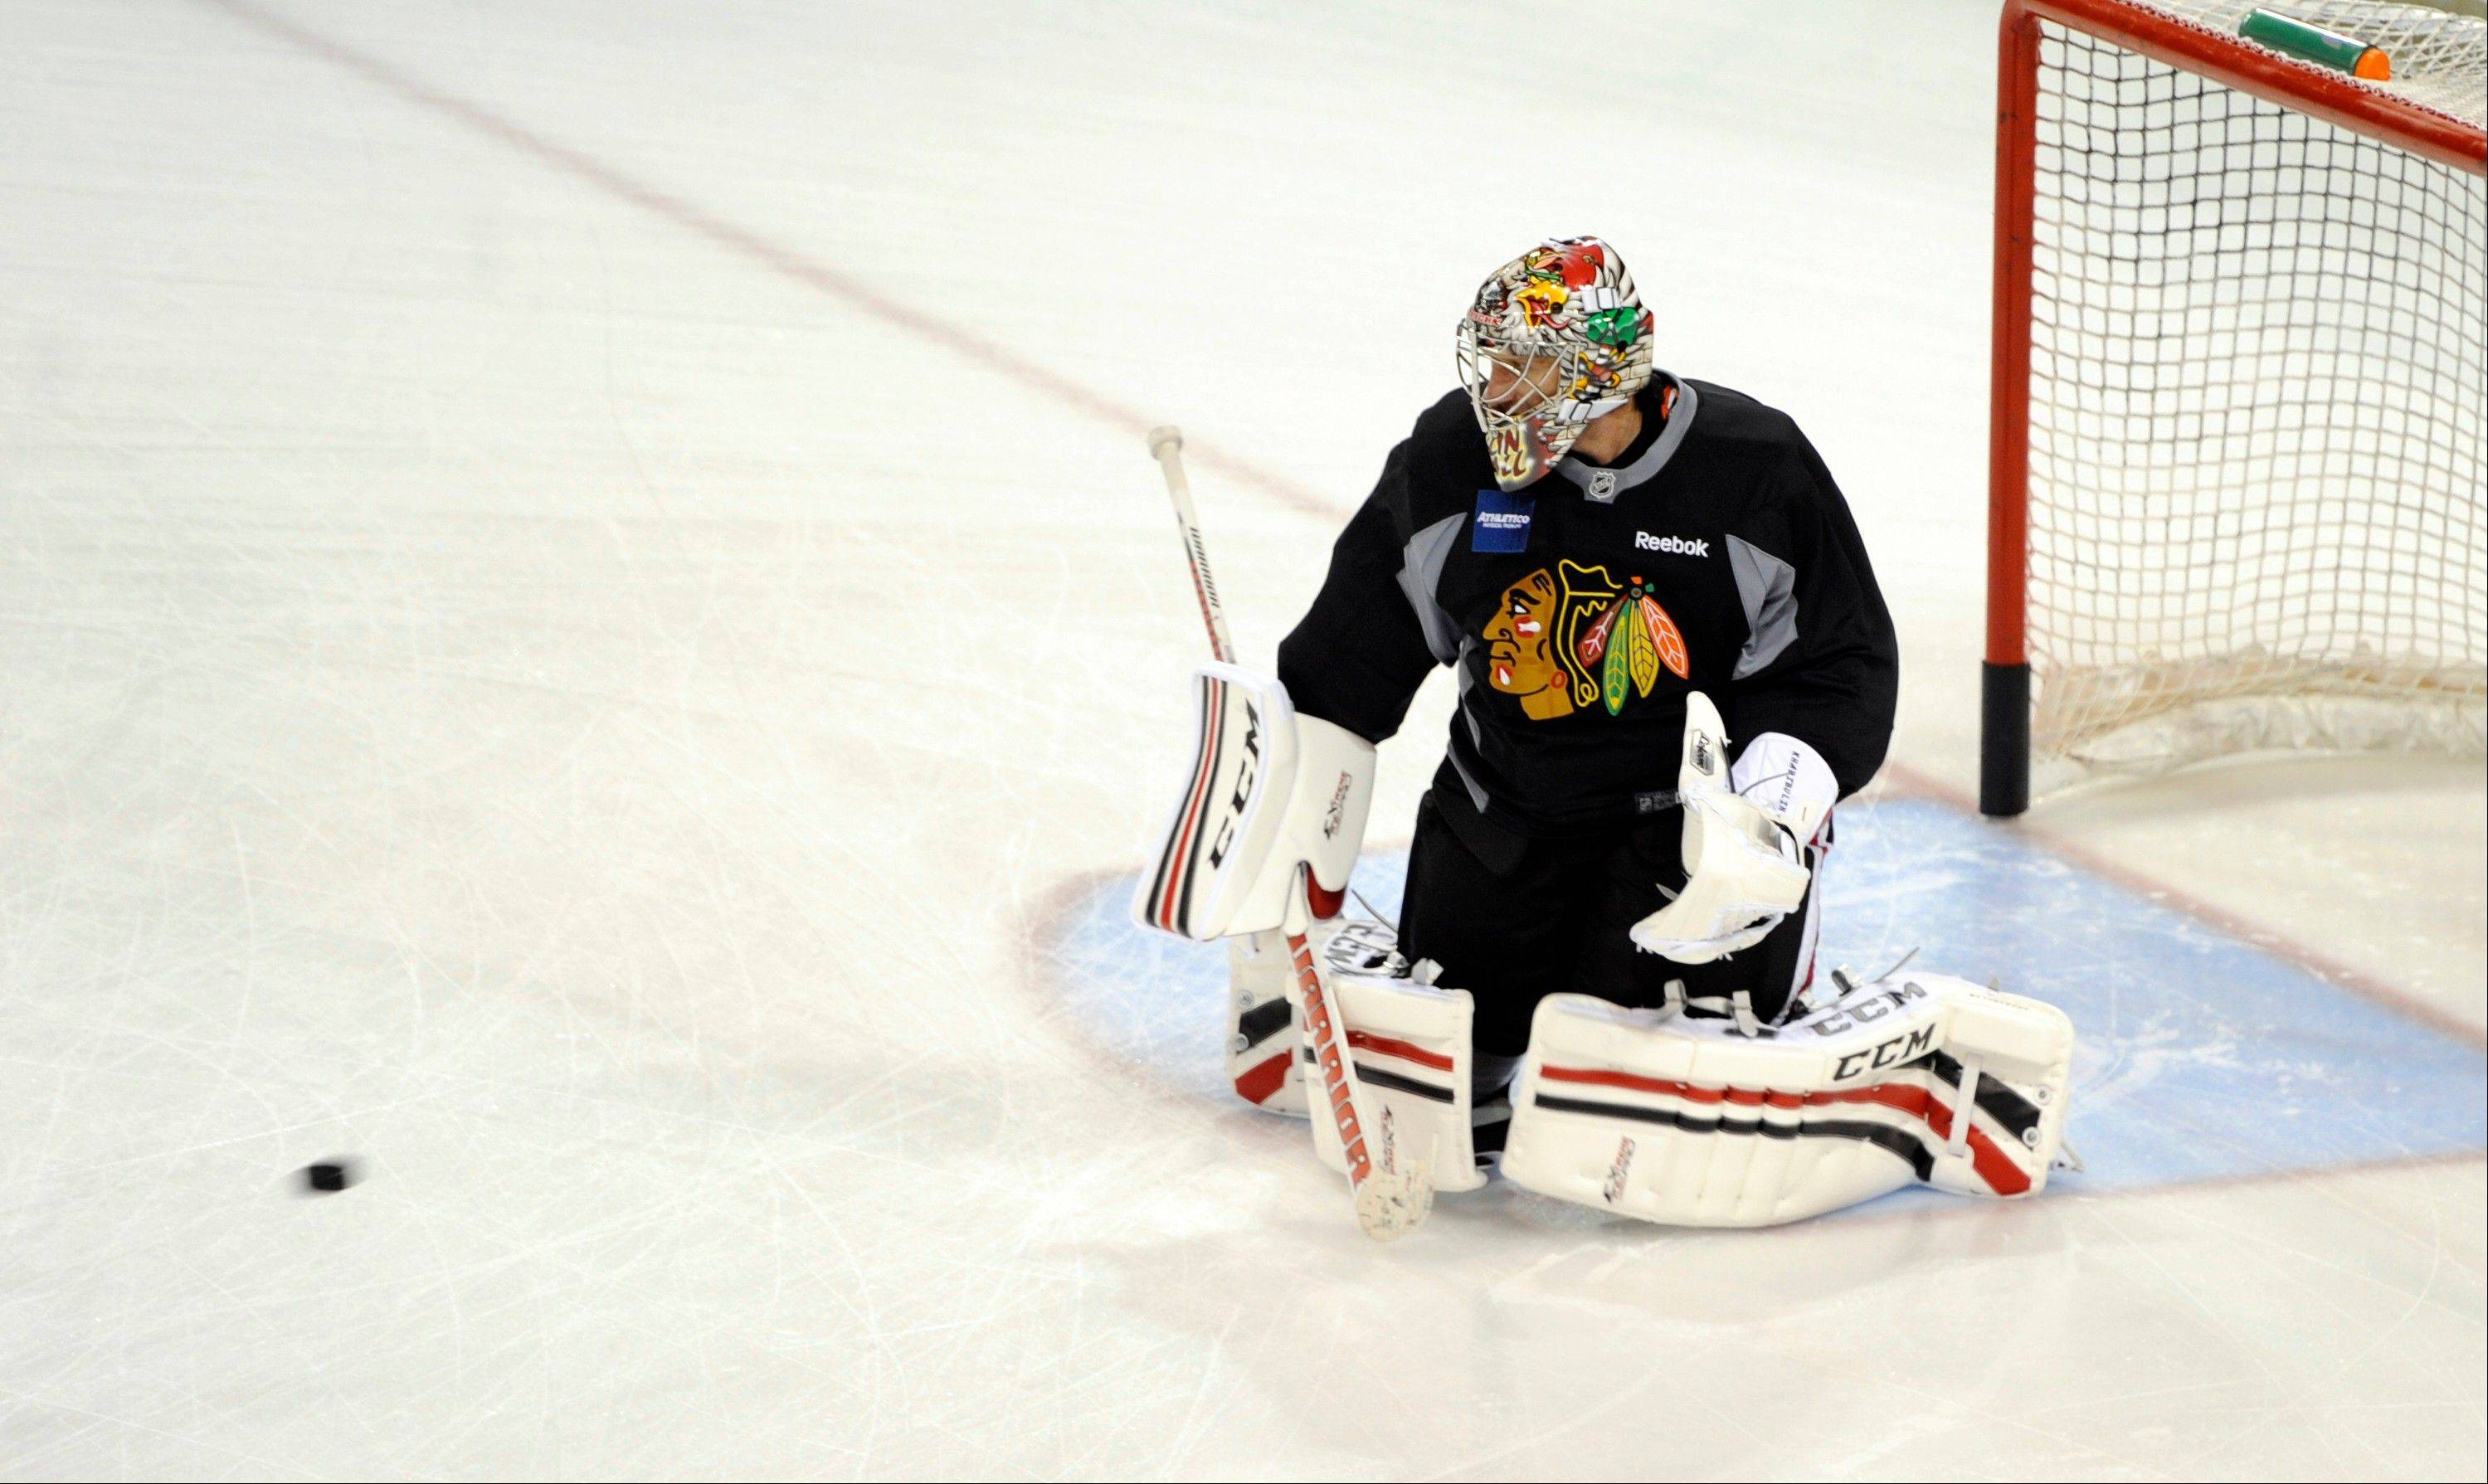 Nikolai Khabibulin, back with his second tour with the Blackhawks, says he understands his role with the team as they go through training camp at the University of Notre Dame.